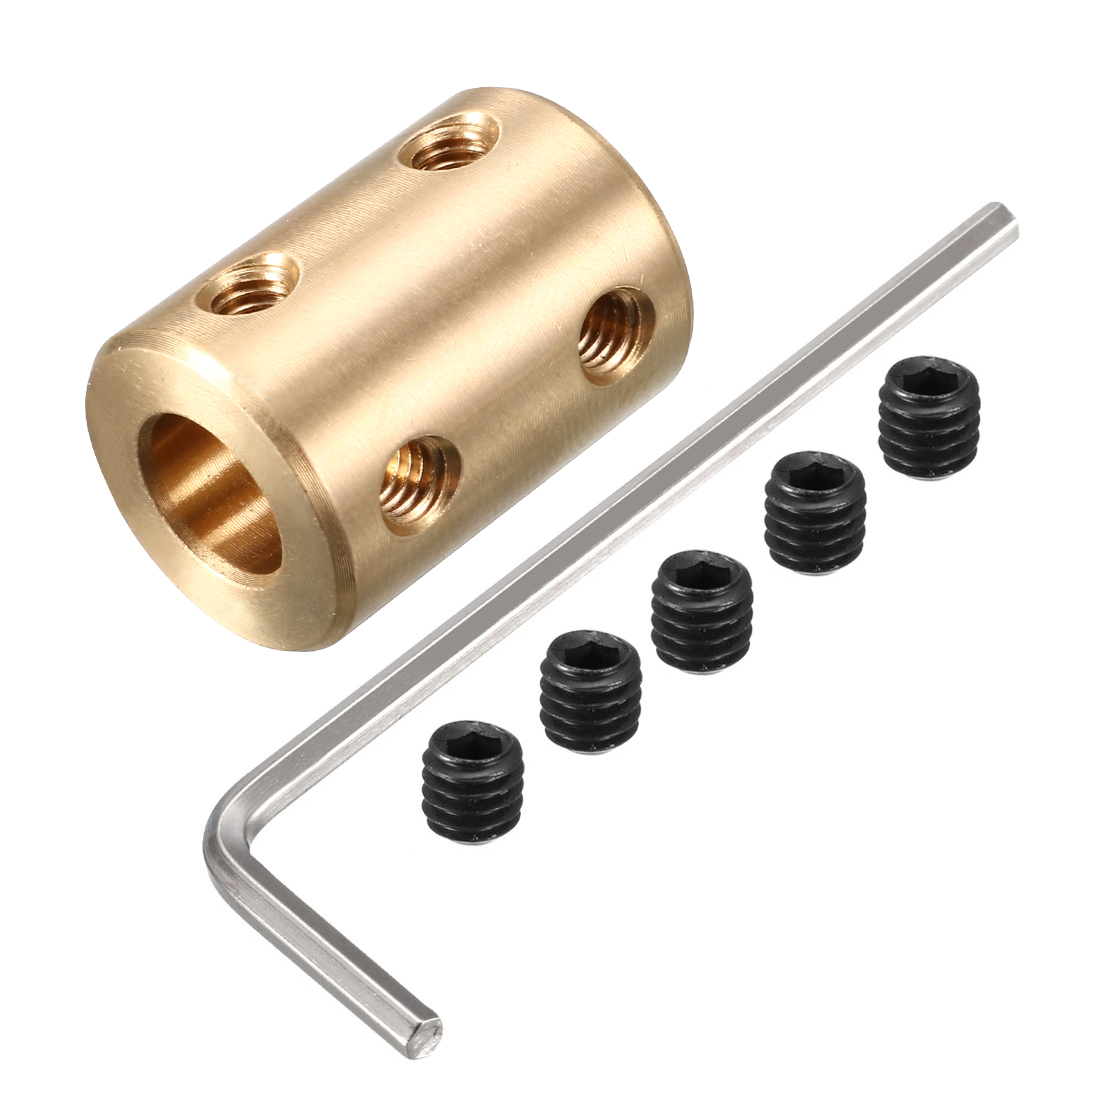 5mm to 8mm Copper DIY Motor Shaft Coupling Joint Adapter for Electrical Car Toy